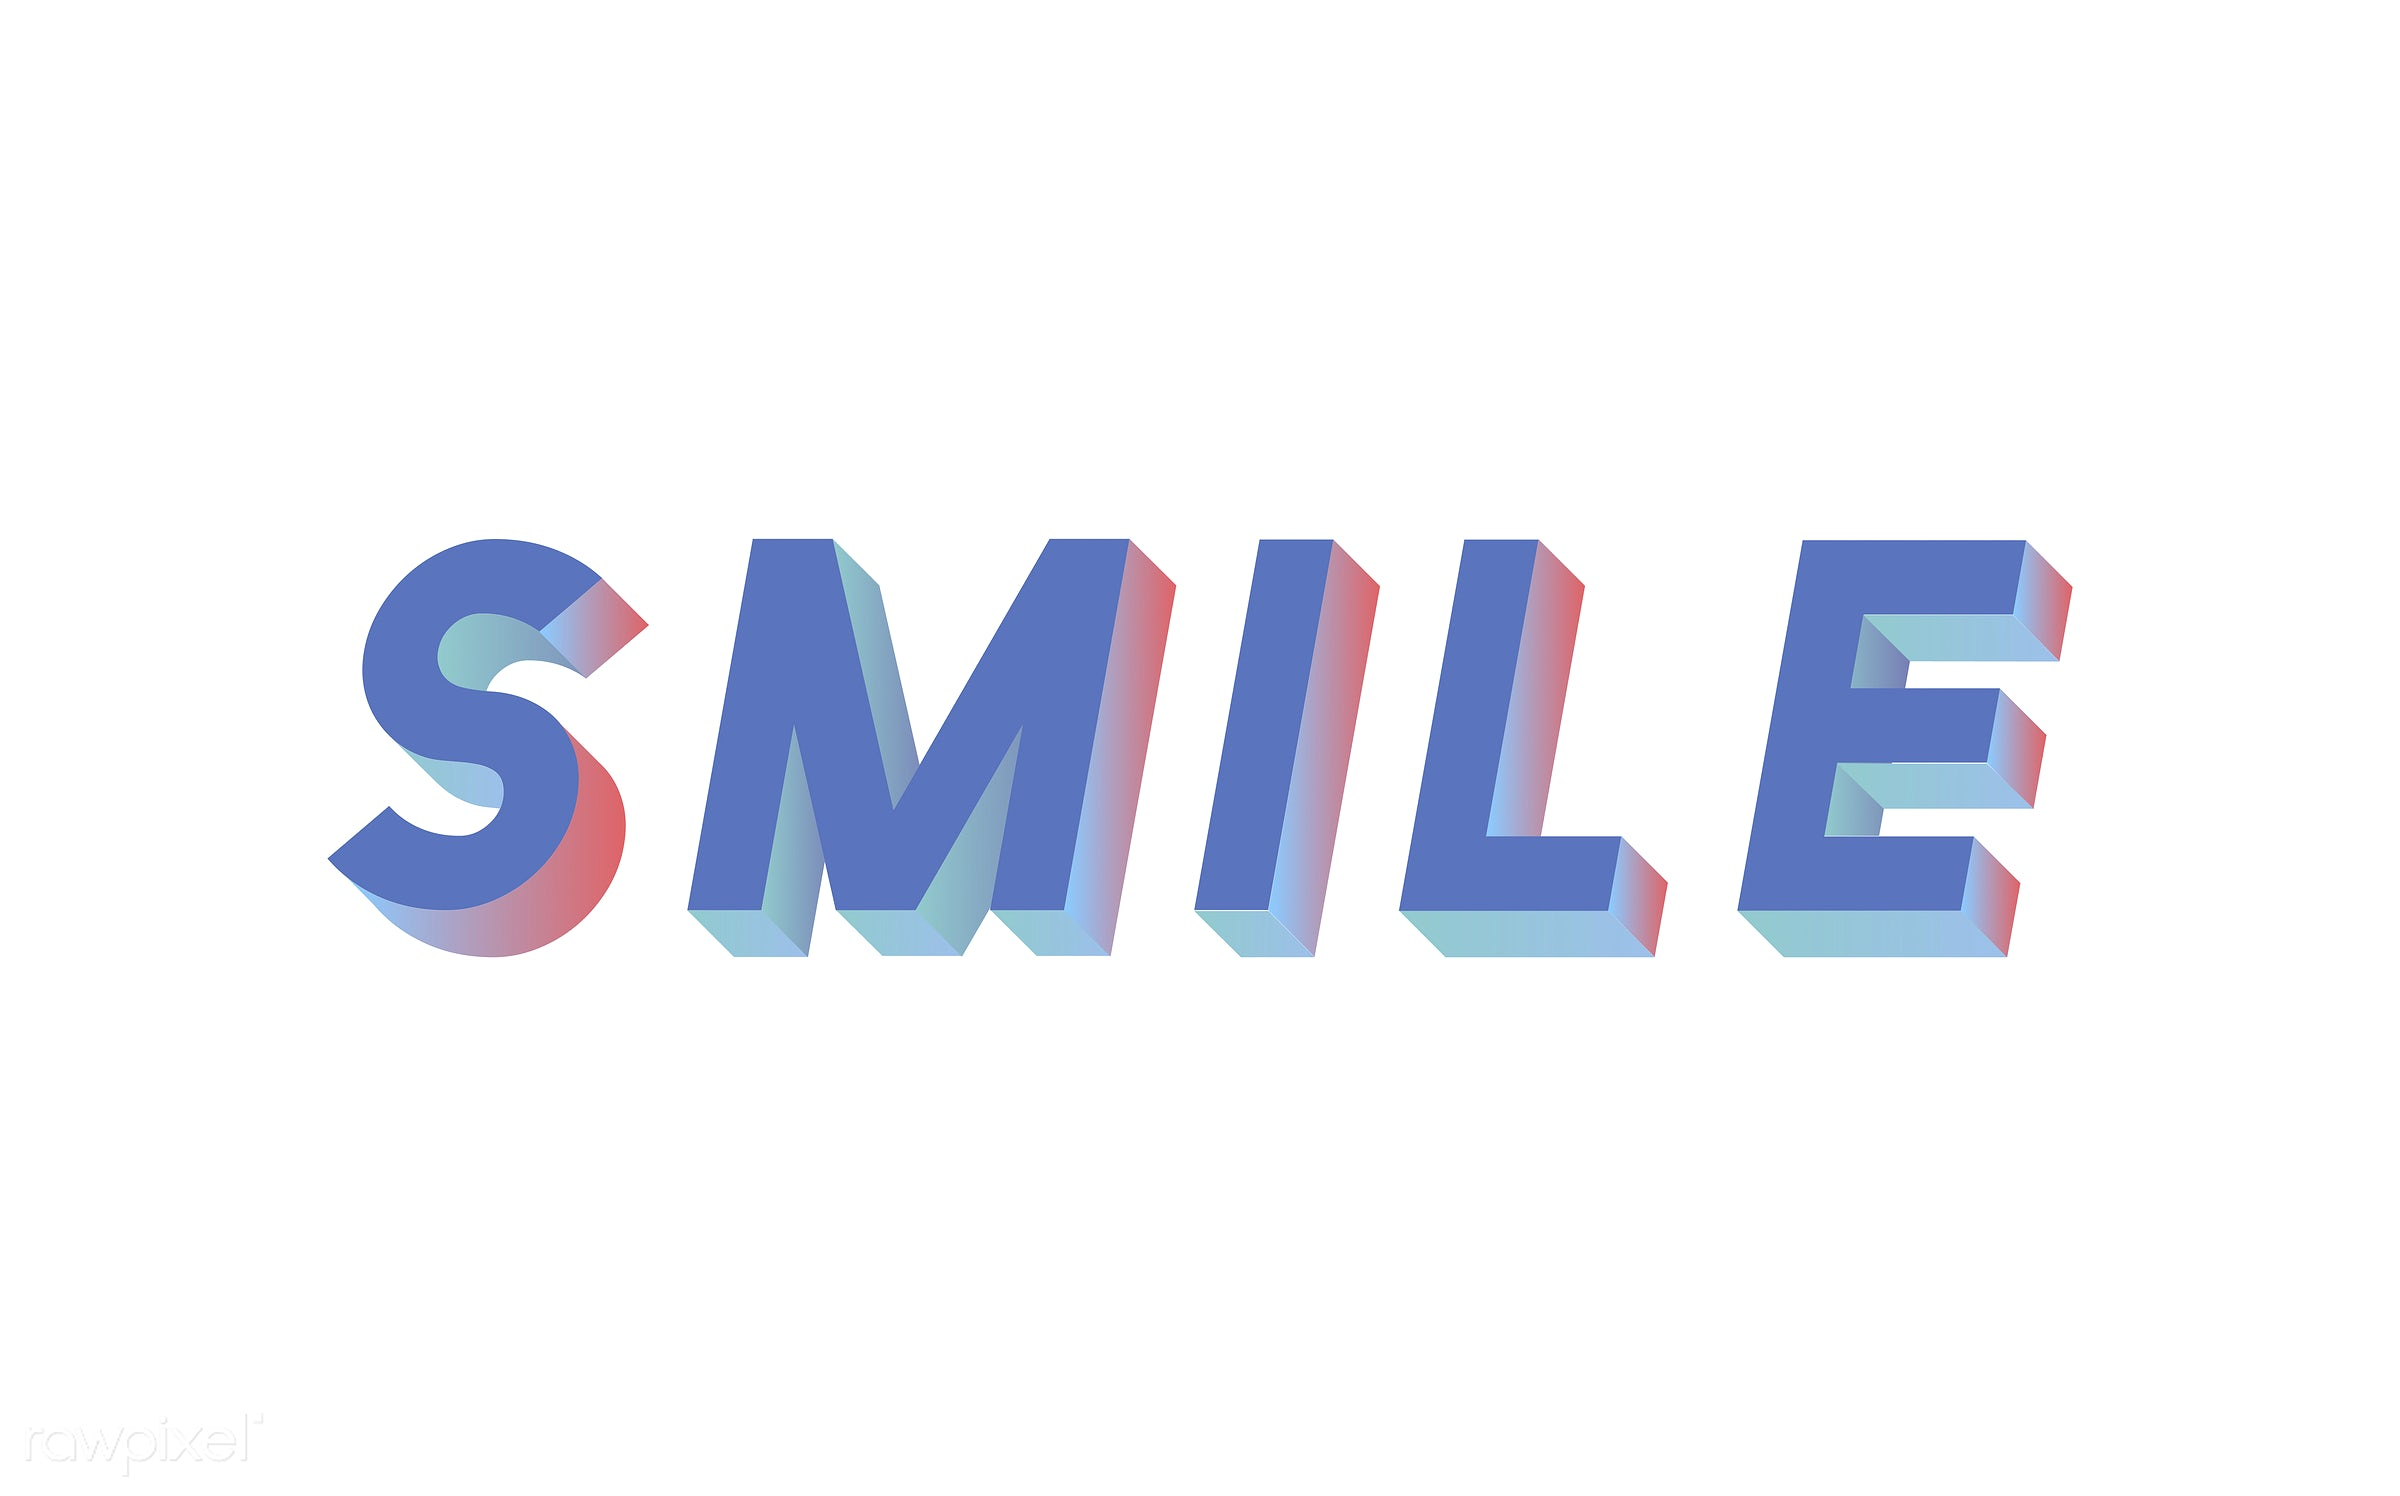 neon, colorful, 3d, three dimensional, vector, illustration, graphic, word, white, blue, be happy, laugh